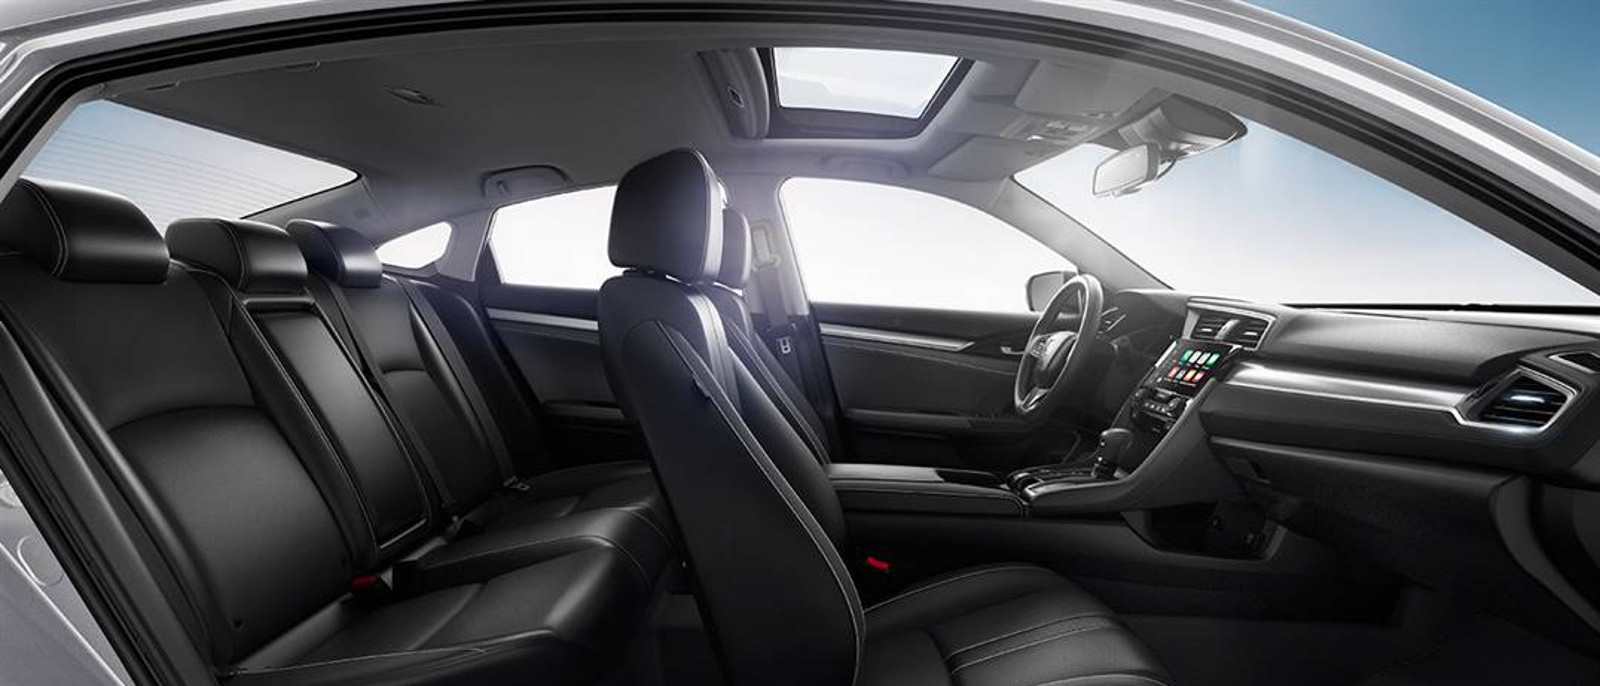 2016 Honda Civic Sedan Seats